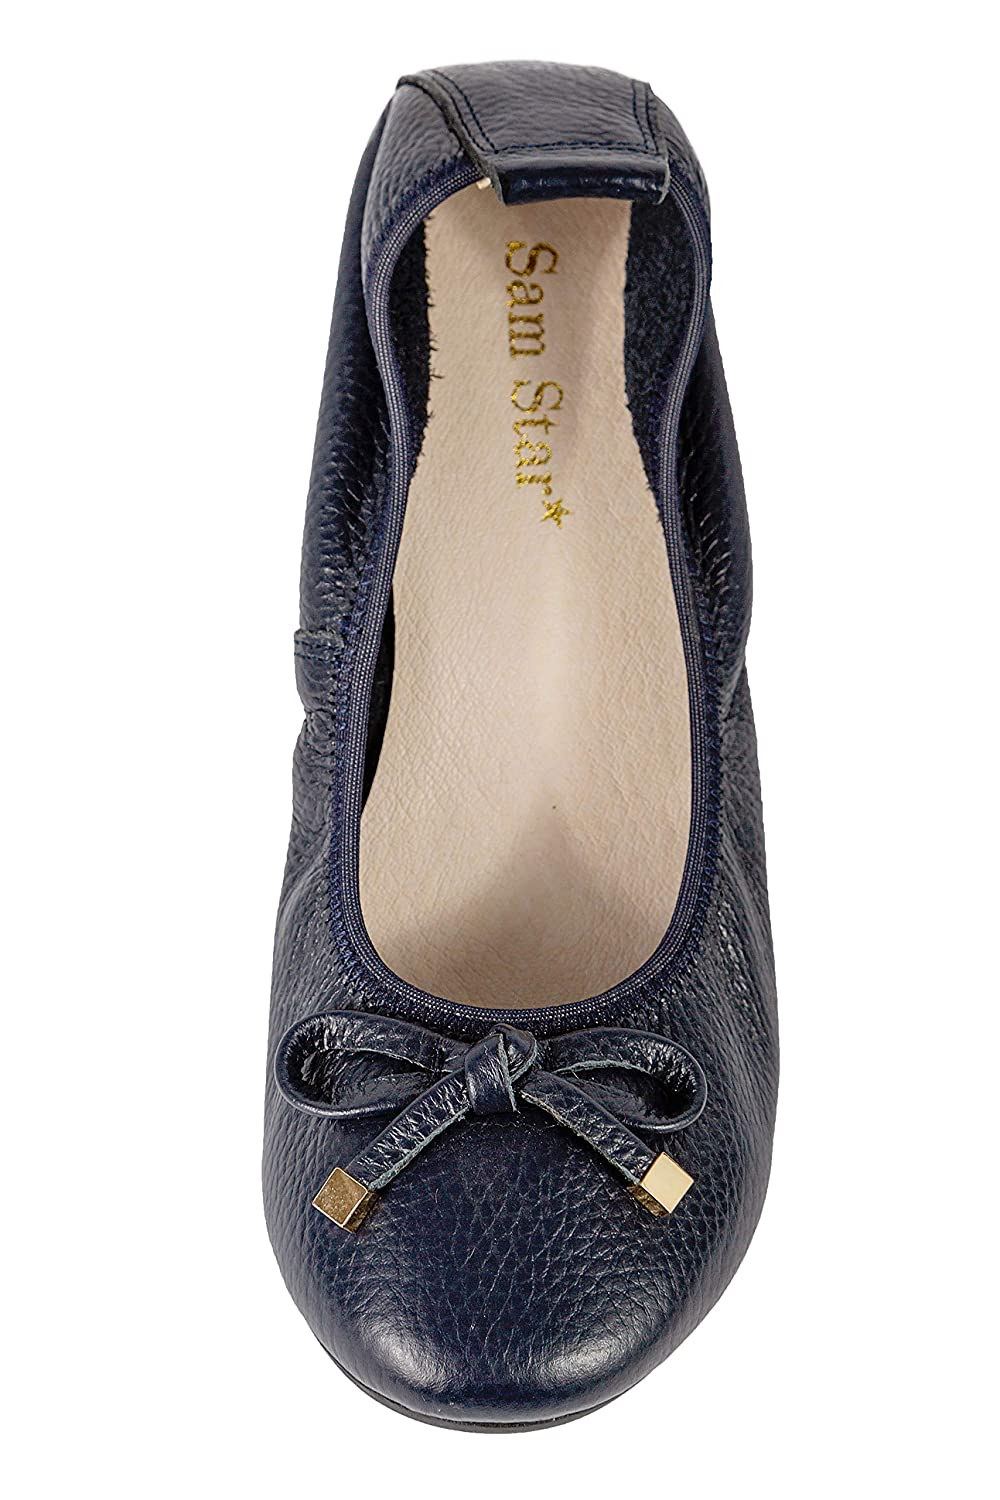 Premium Soft Comfortable Slip-On Modern Ballerina Flat with Genuine Leather Casual Rounded Toe Bow Design Flat for Woman